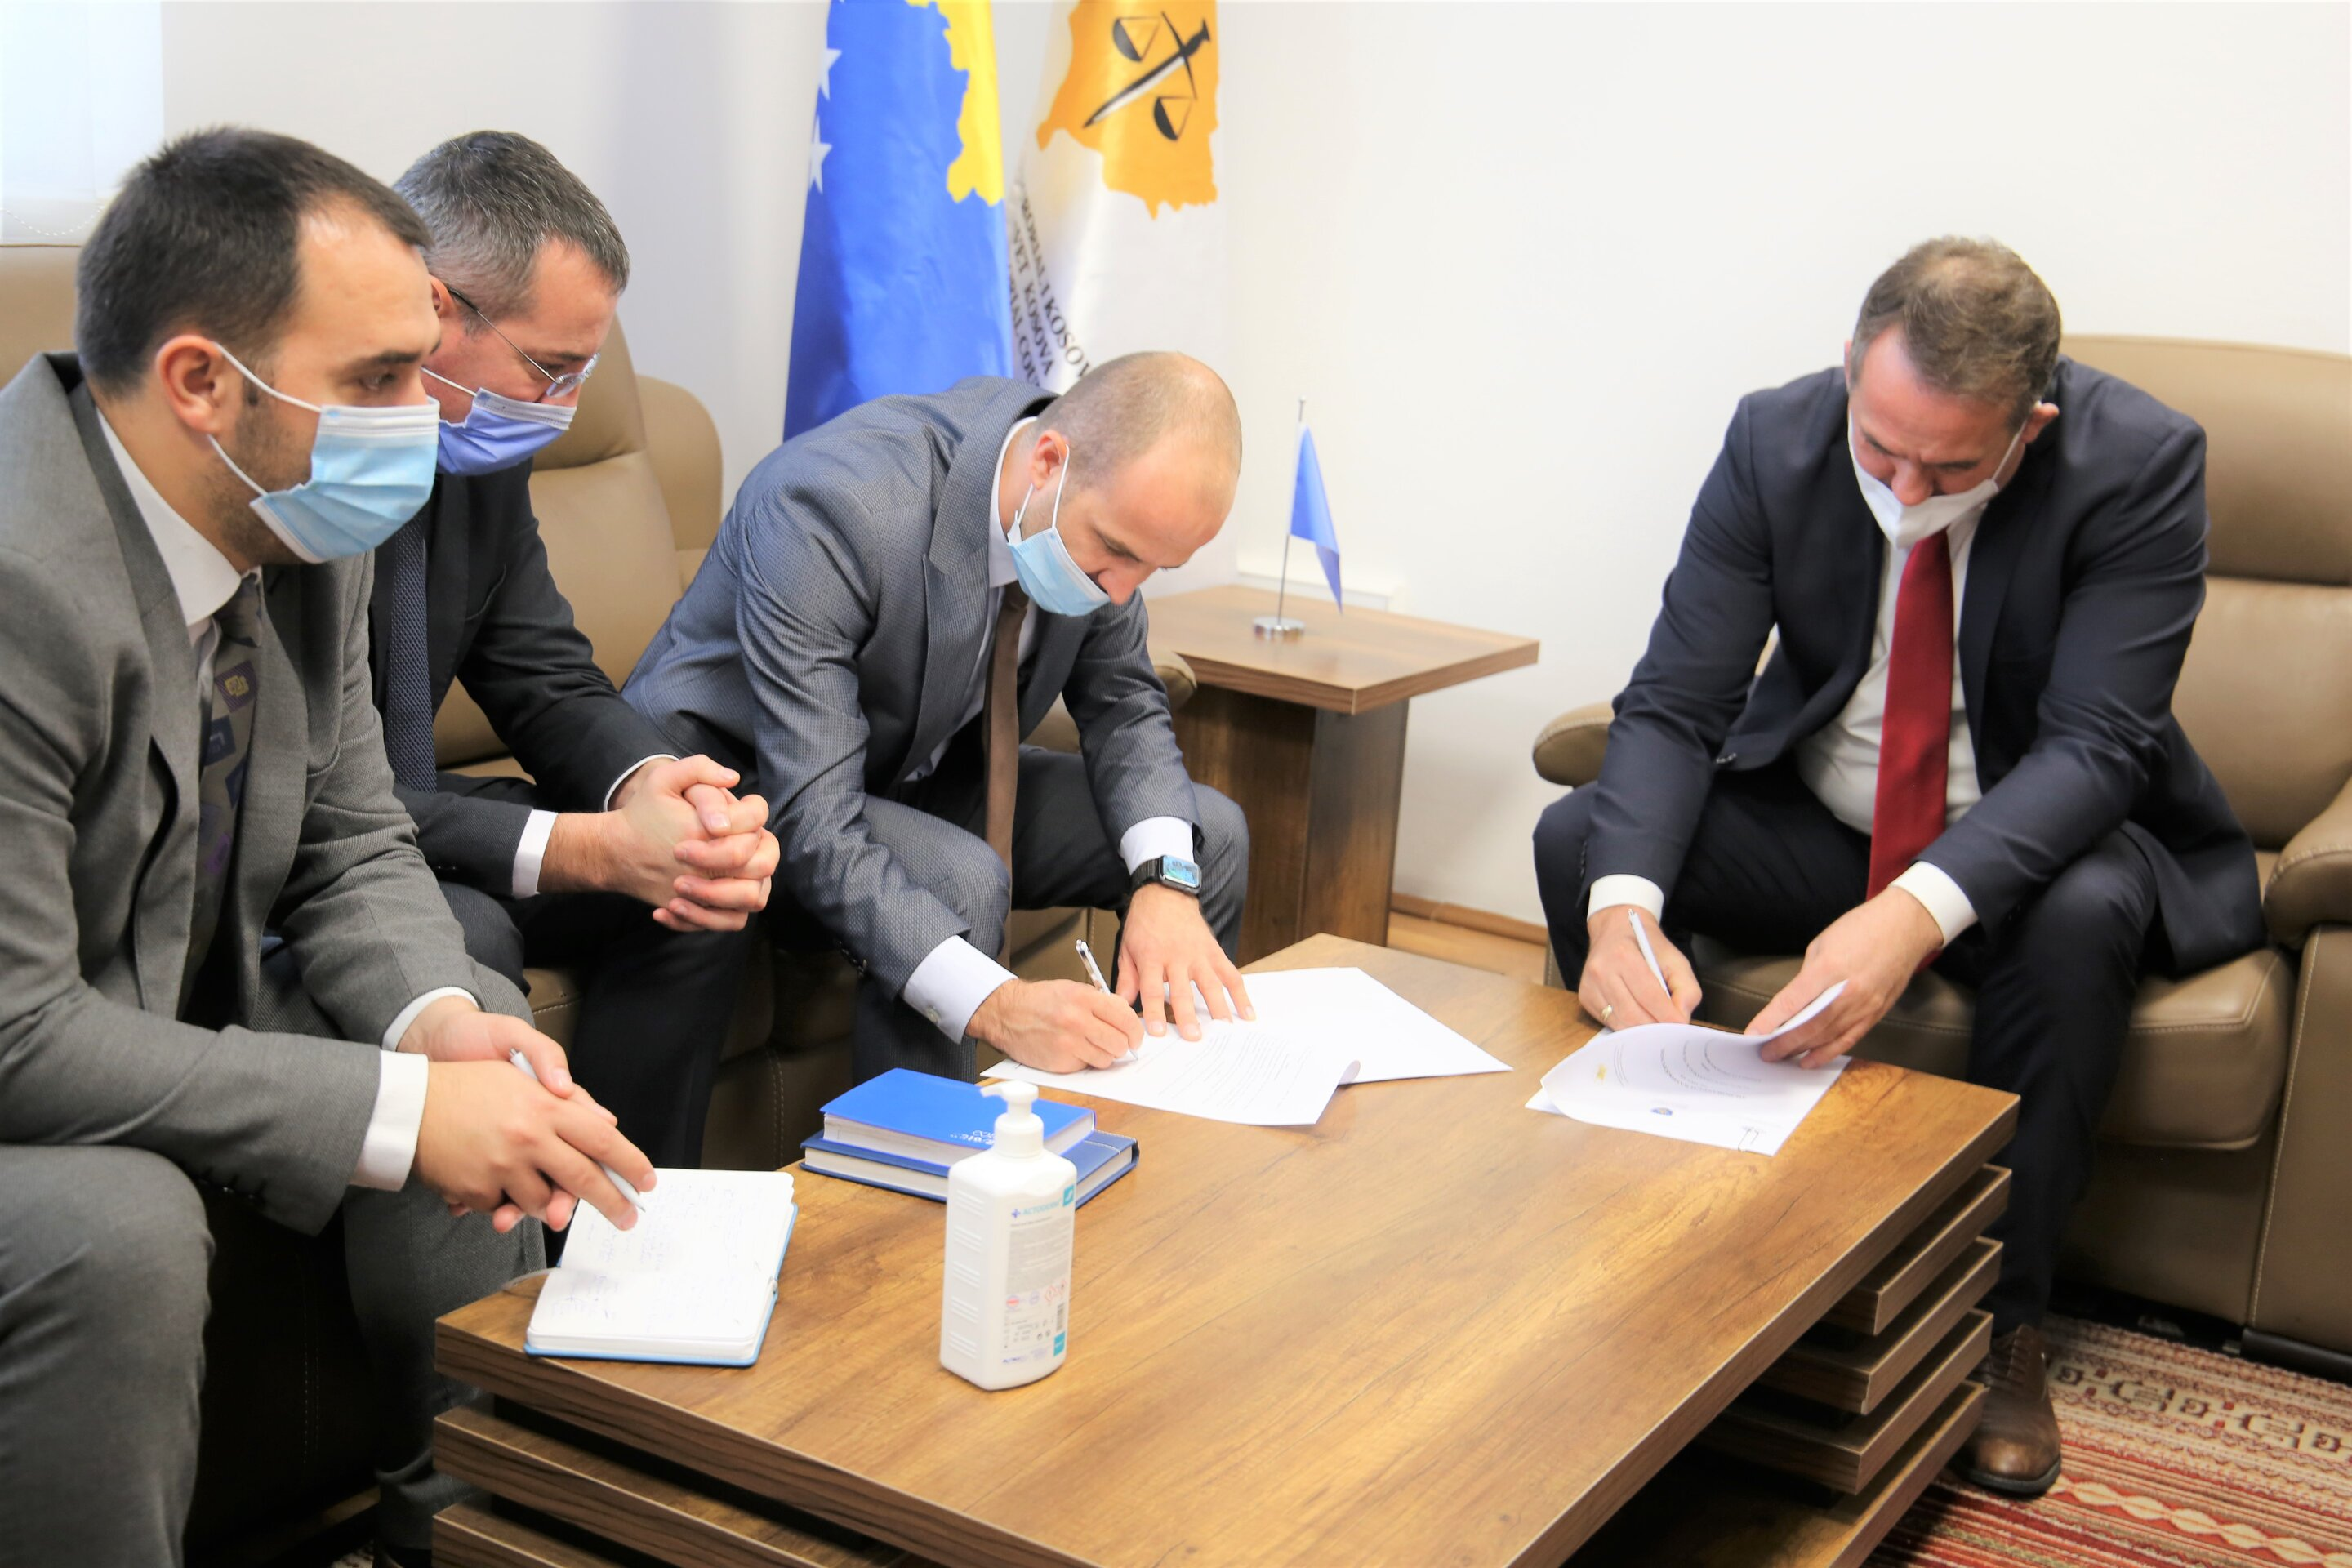 A memorandum of cooperation is signed between KPC and KCA